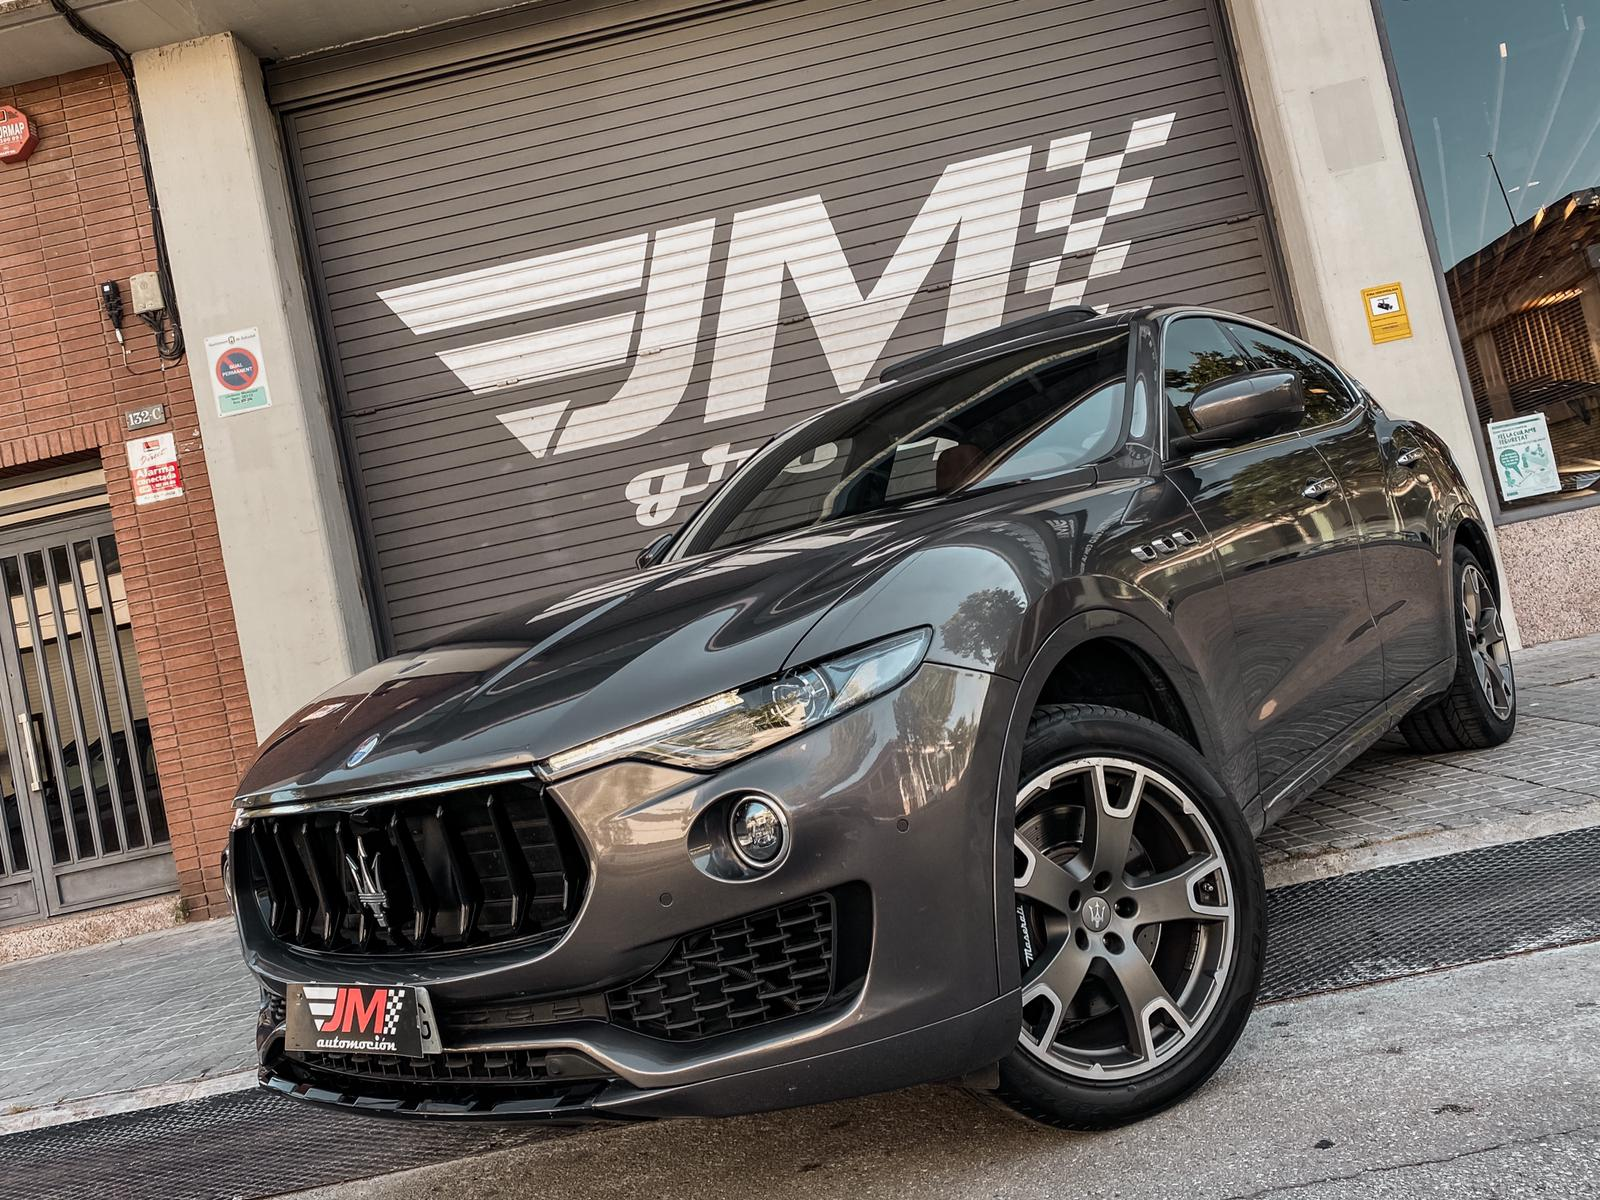 MASERATI LEVANTE S AUT. -NACIONAL, IVA DEDUCIBLE-